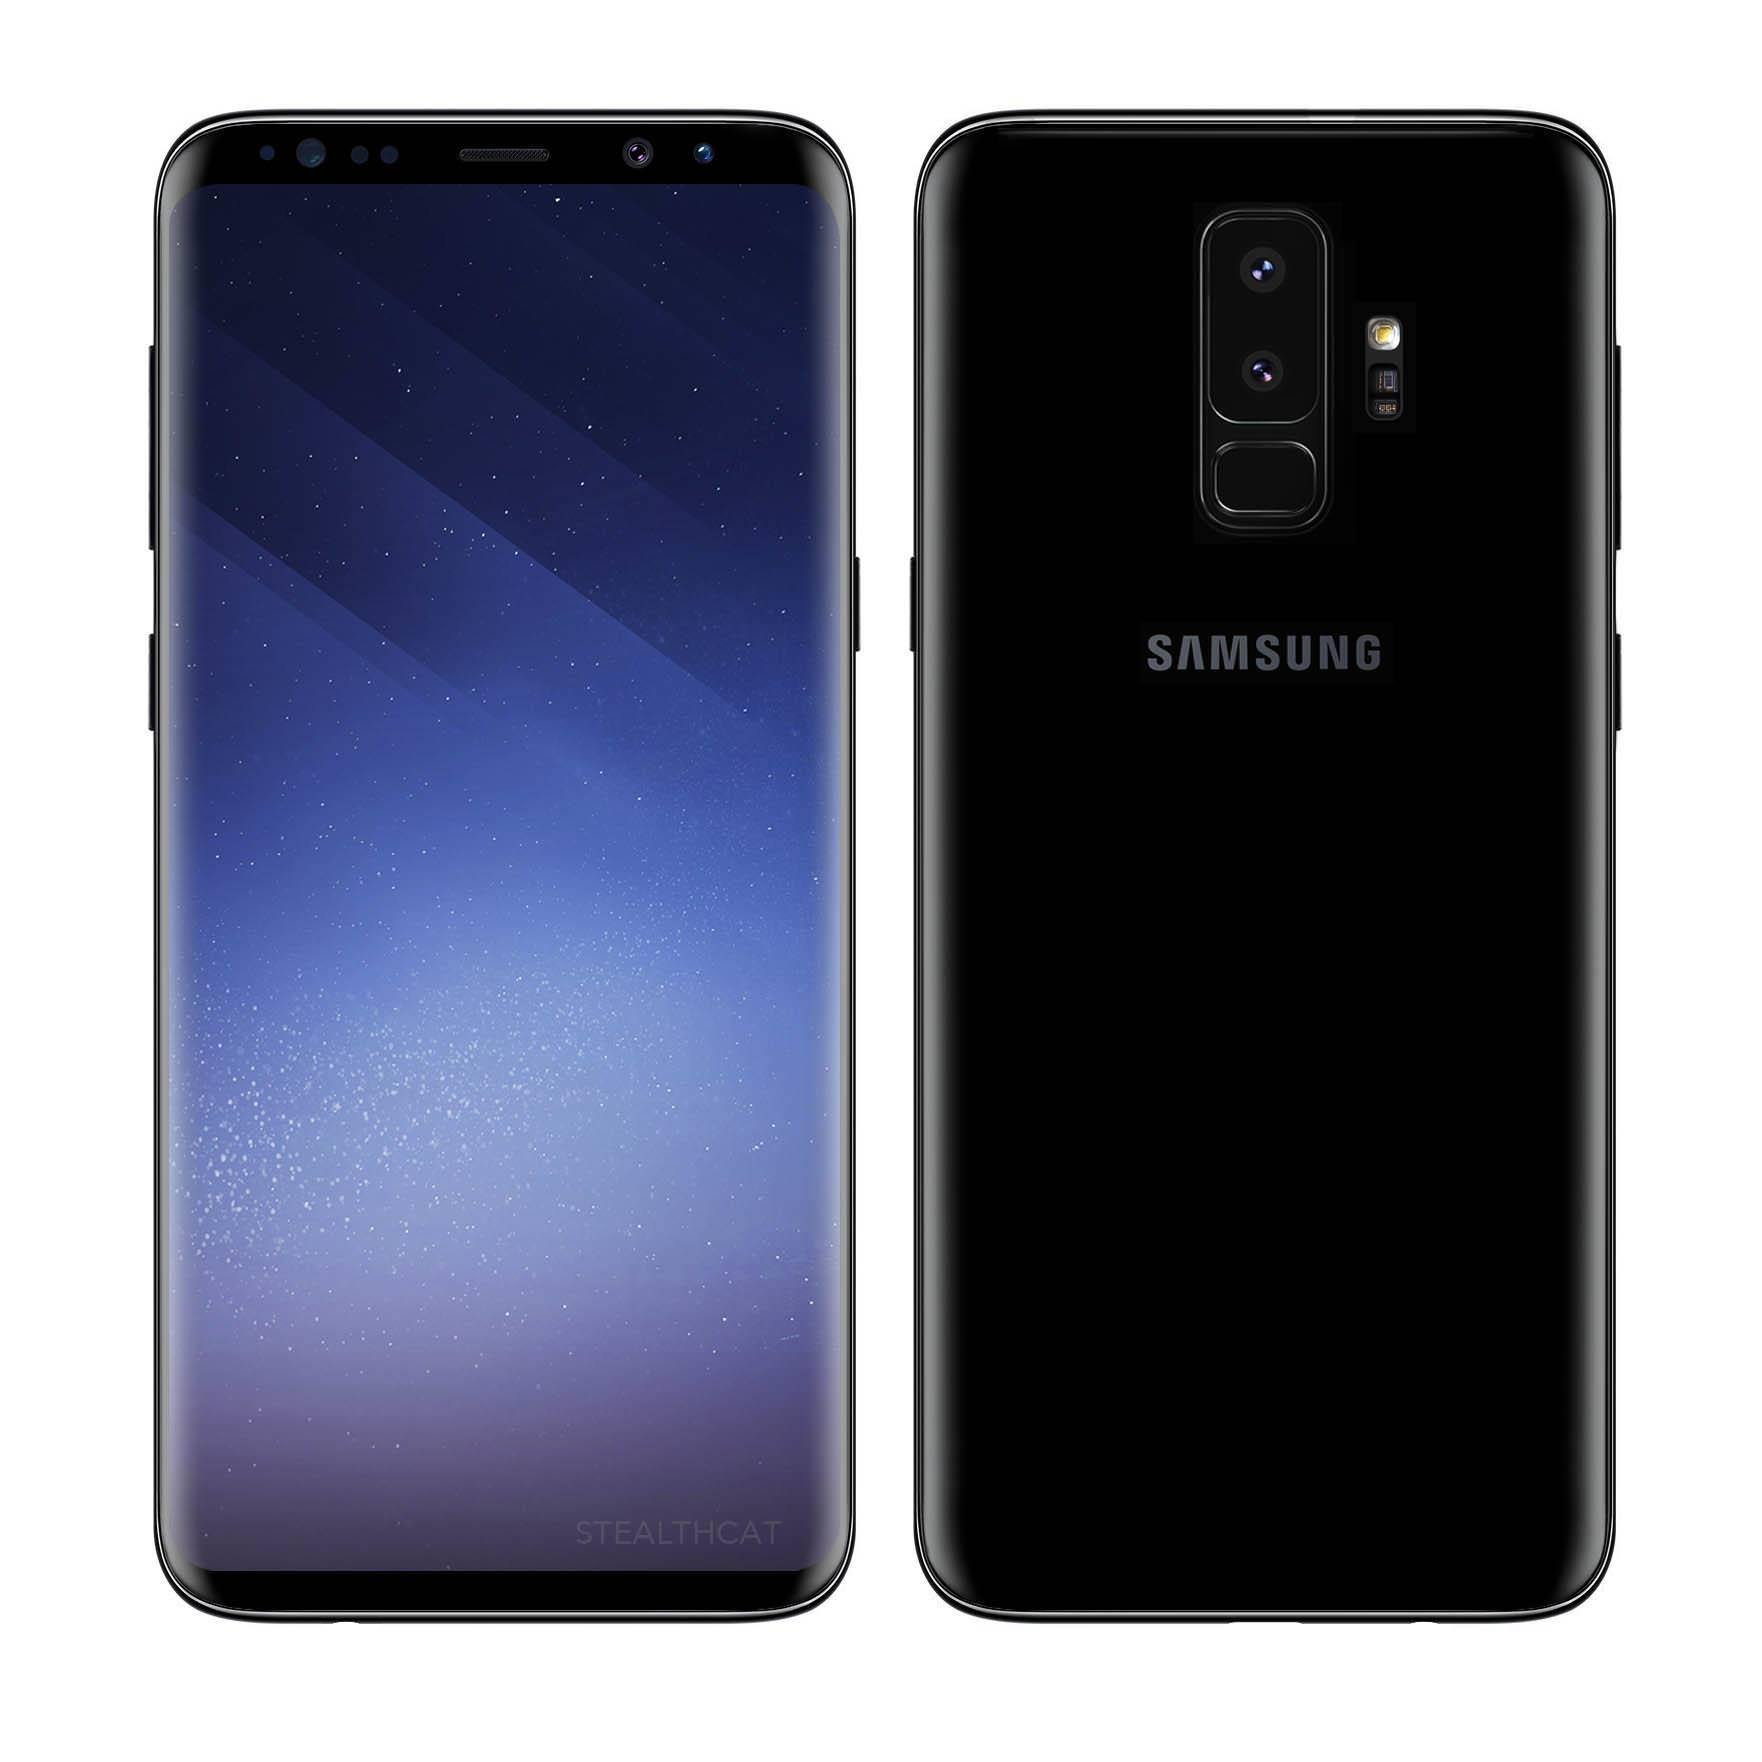 new leak reveals the launch dates of samsung galaxy s9 and. Black Bedroom Furniture Sets. Home Design Ideas